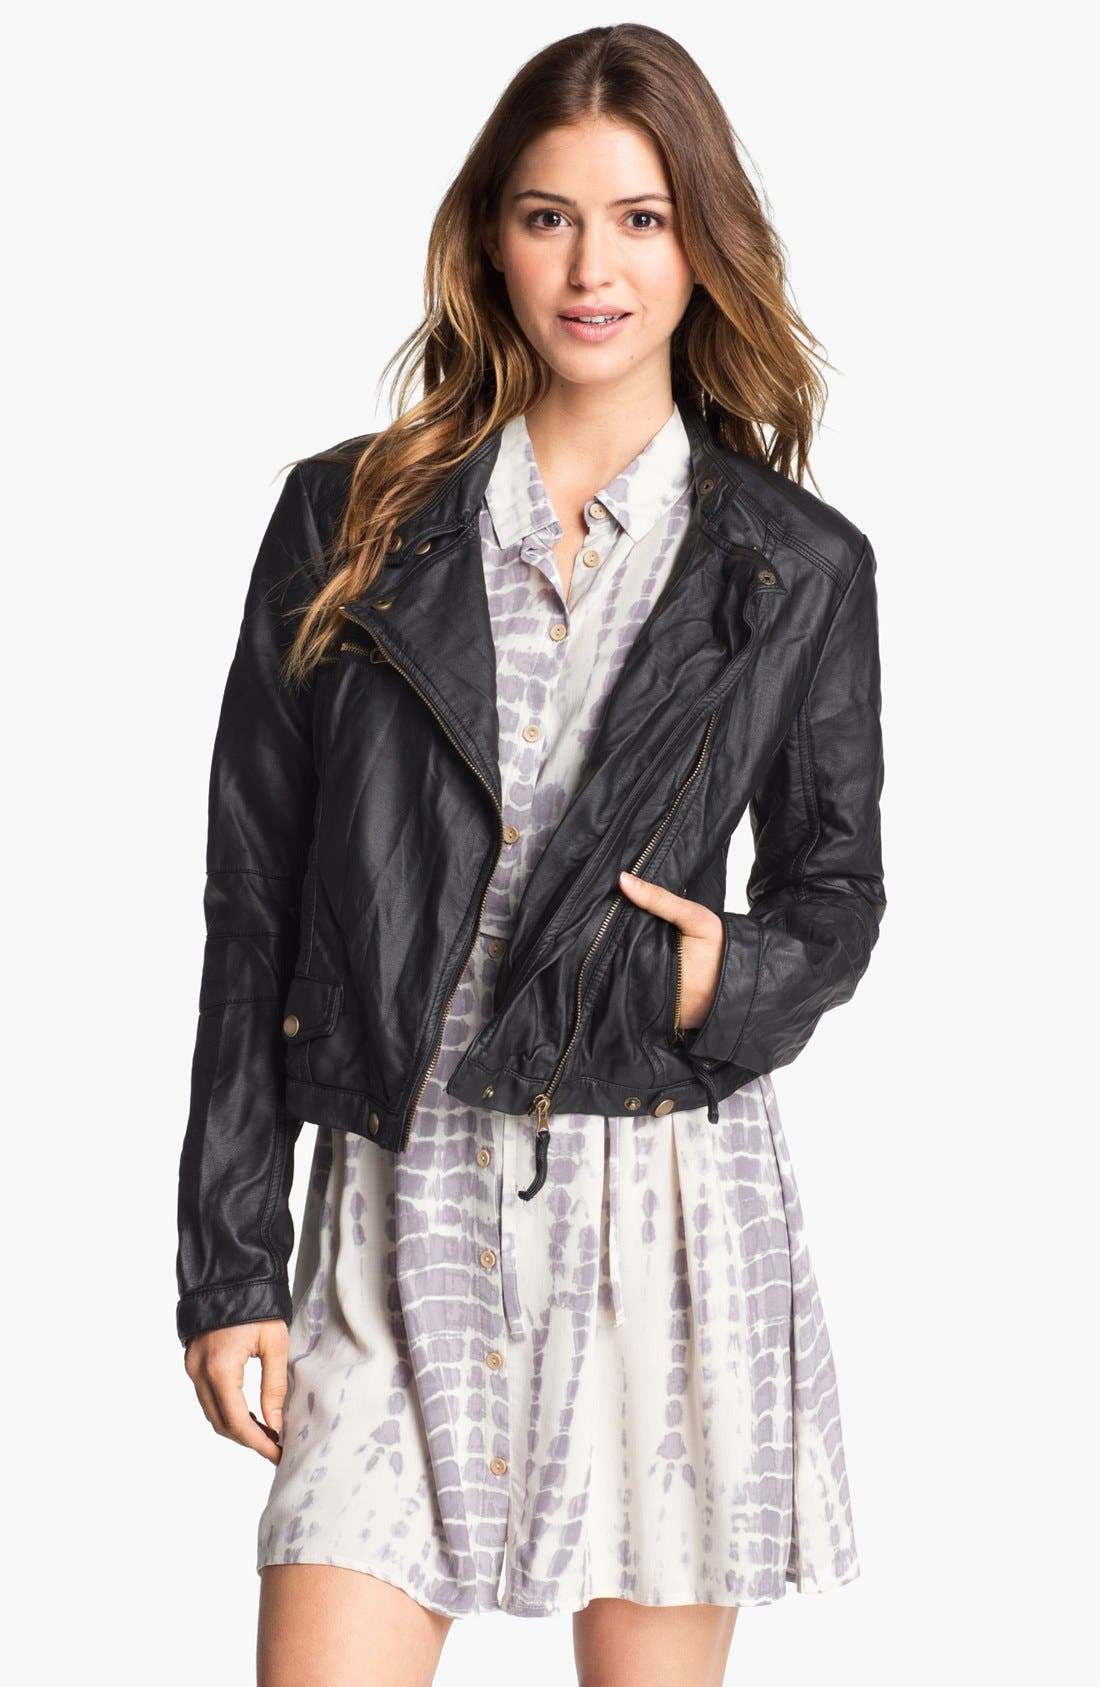 Alternate Image 1 Selected - Research & Design Faux Leather Jacket (Online Only)